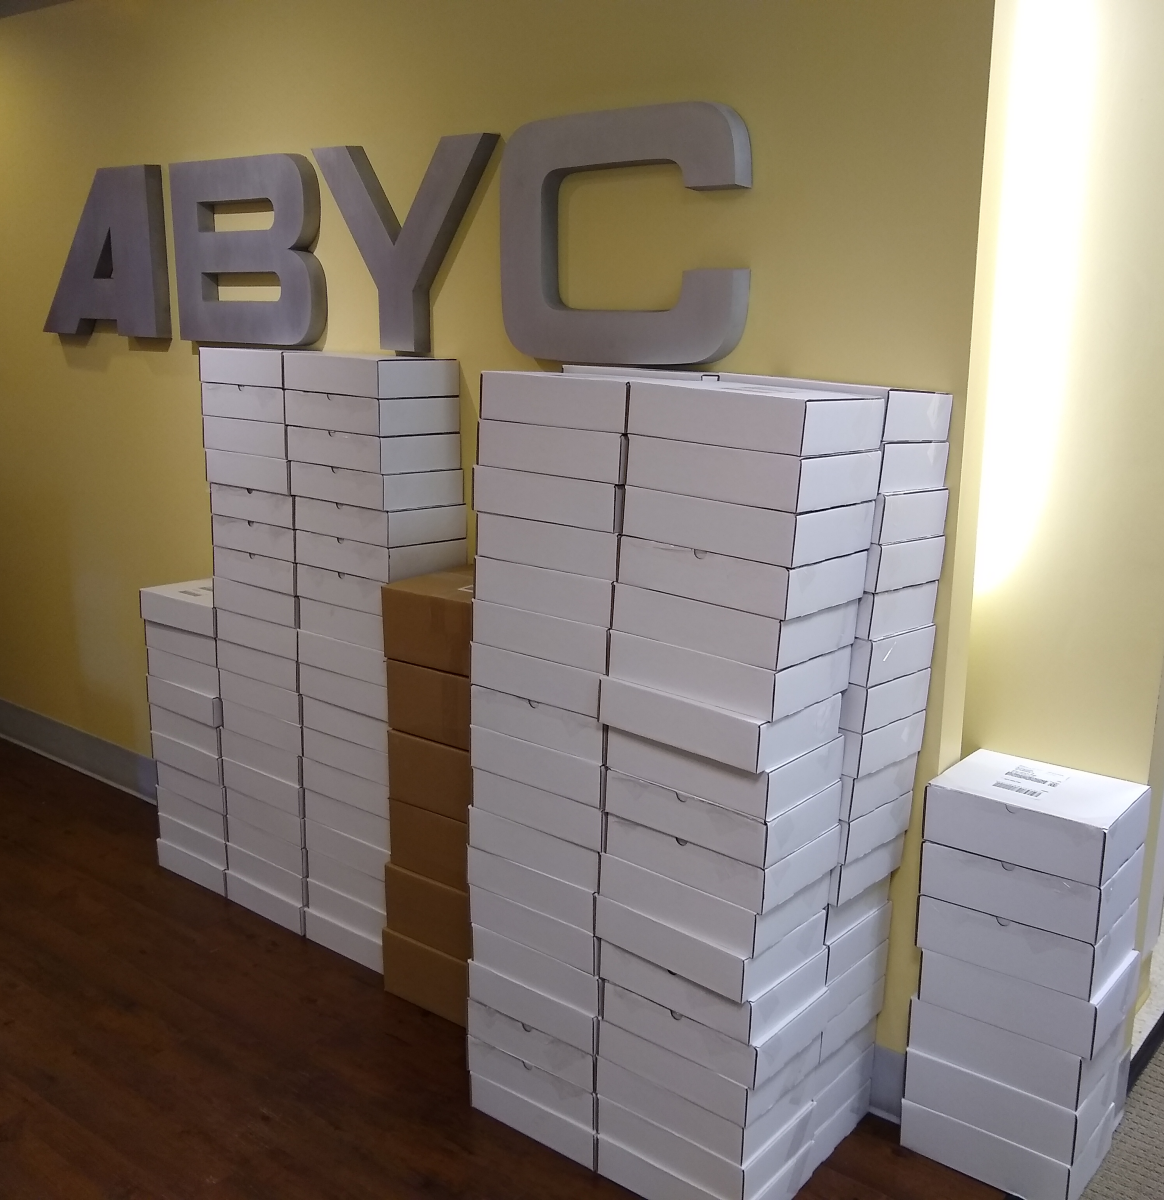 #2_ABYC_Supp61_boxes